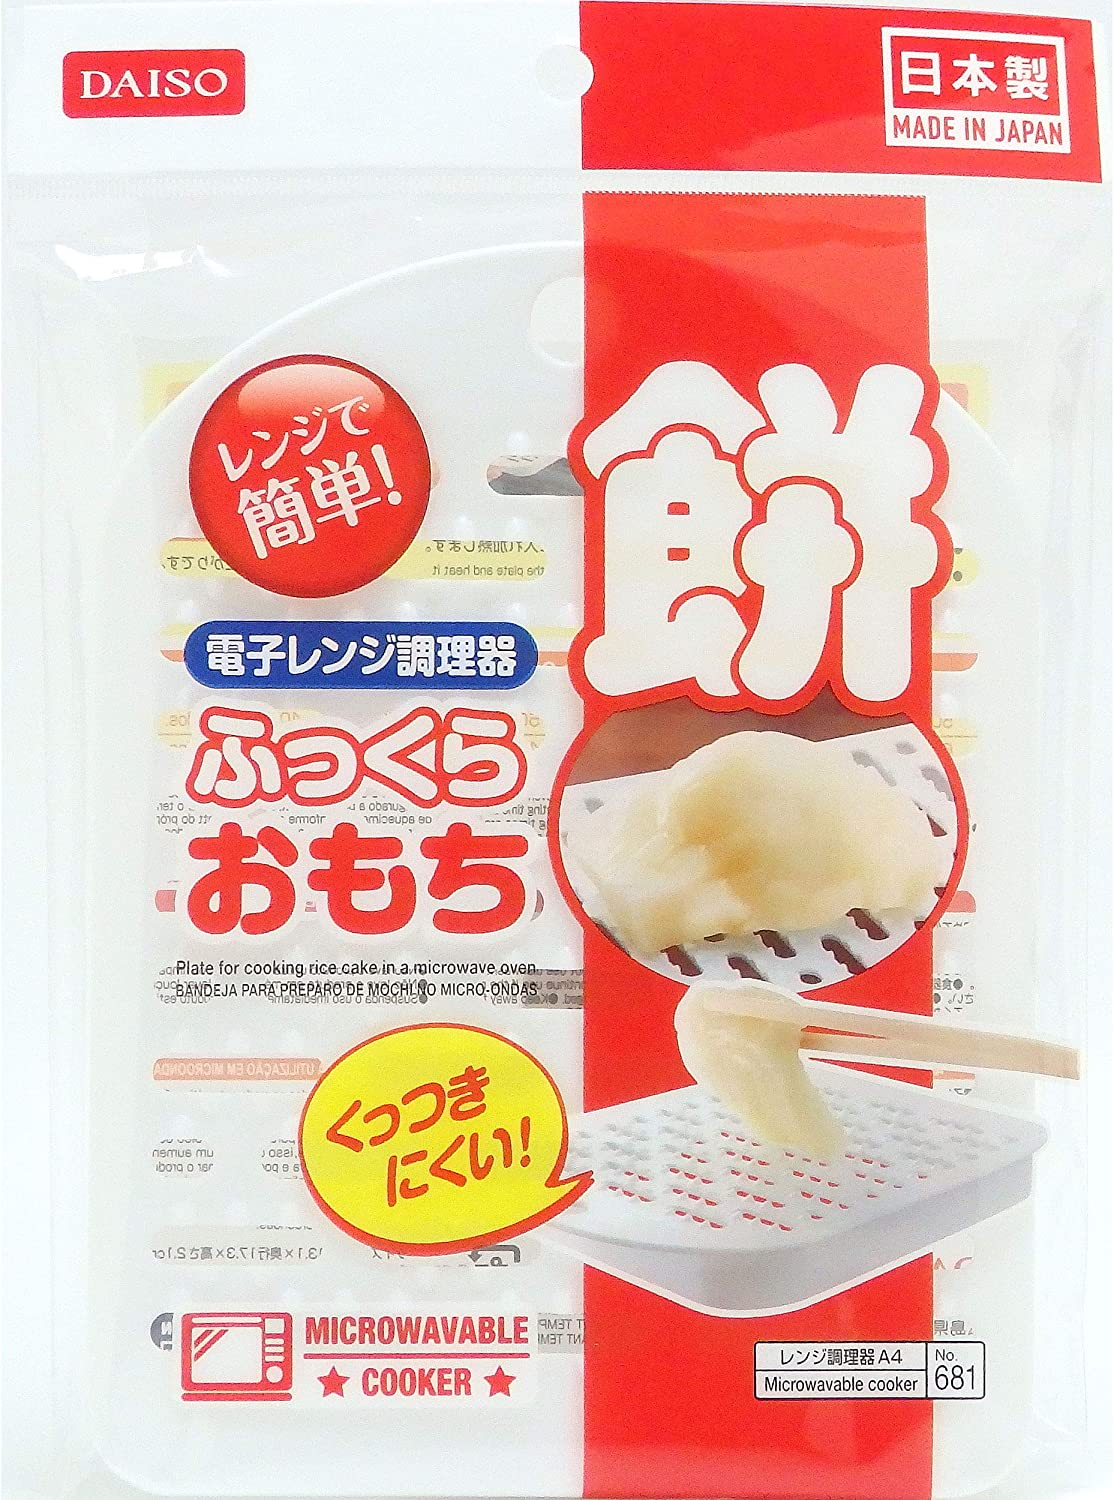 Japanese Mochi Tray(rice cake), Use for cooking in microwave, for Microwavable mochi cooker